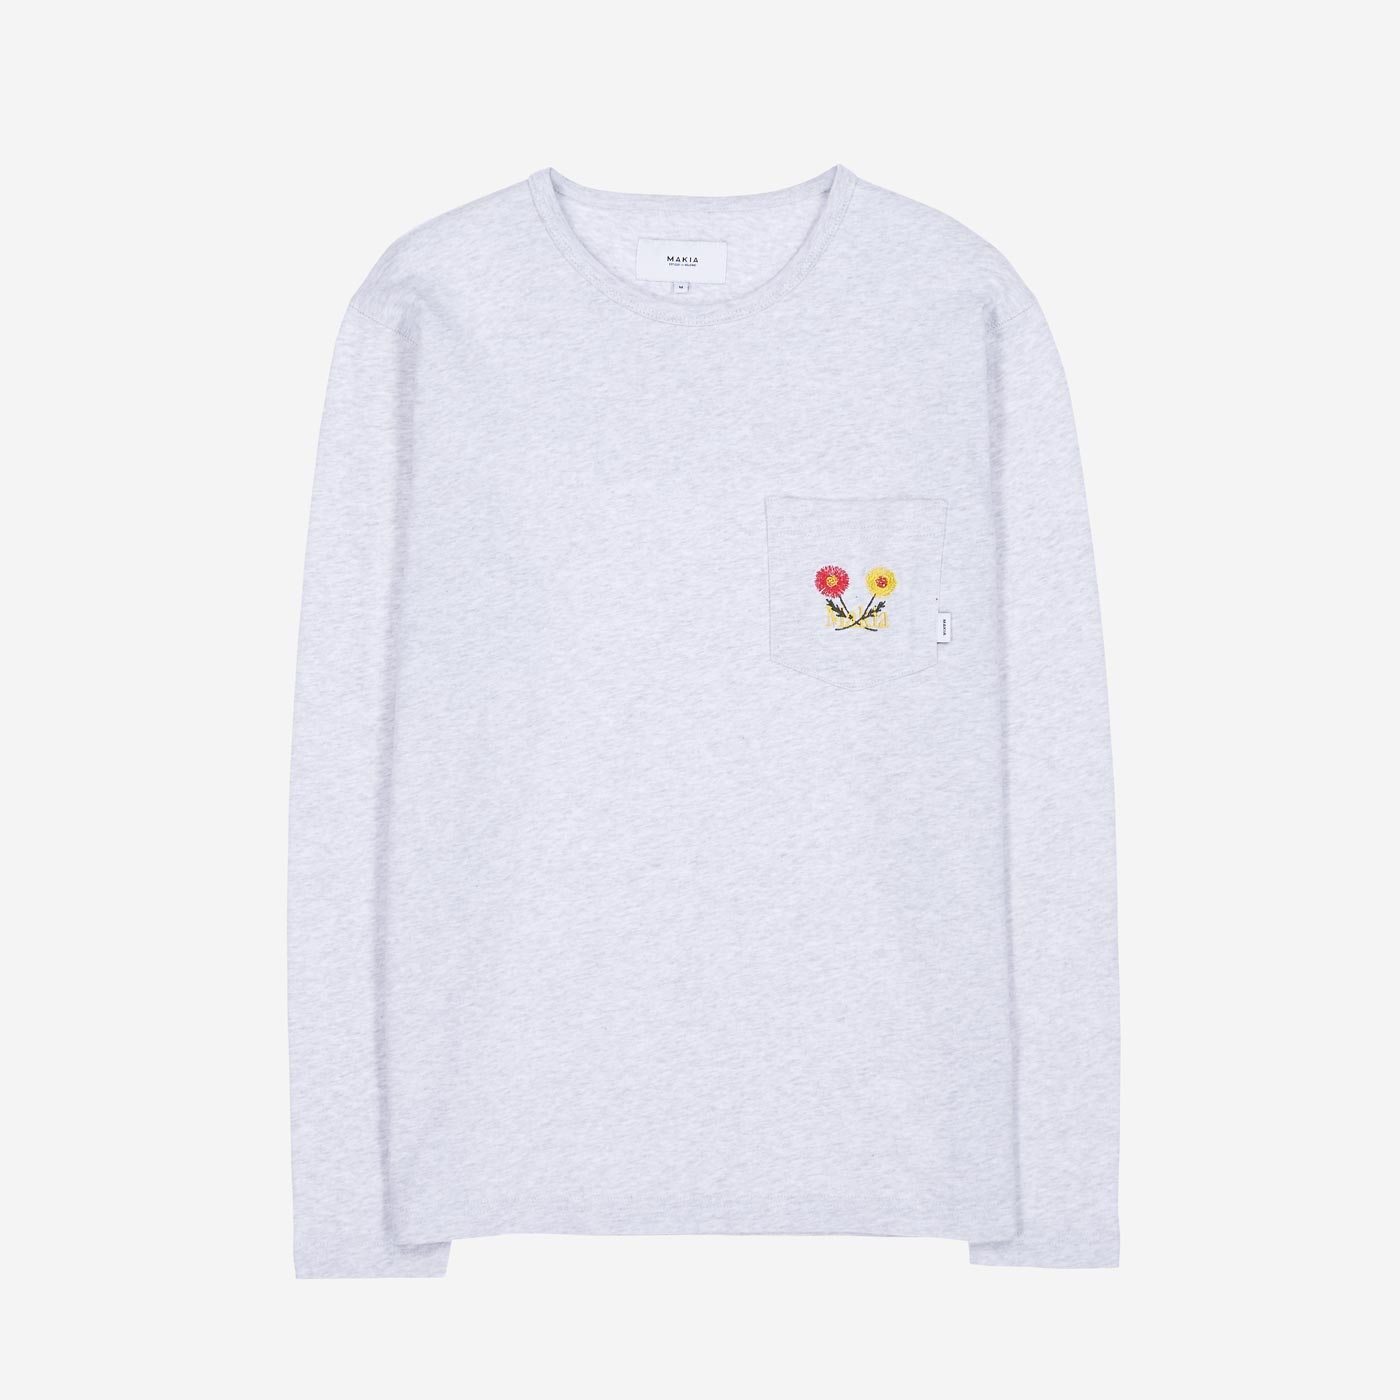 Garden long sleeve